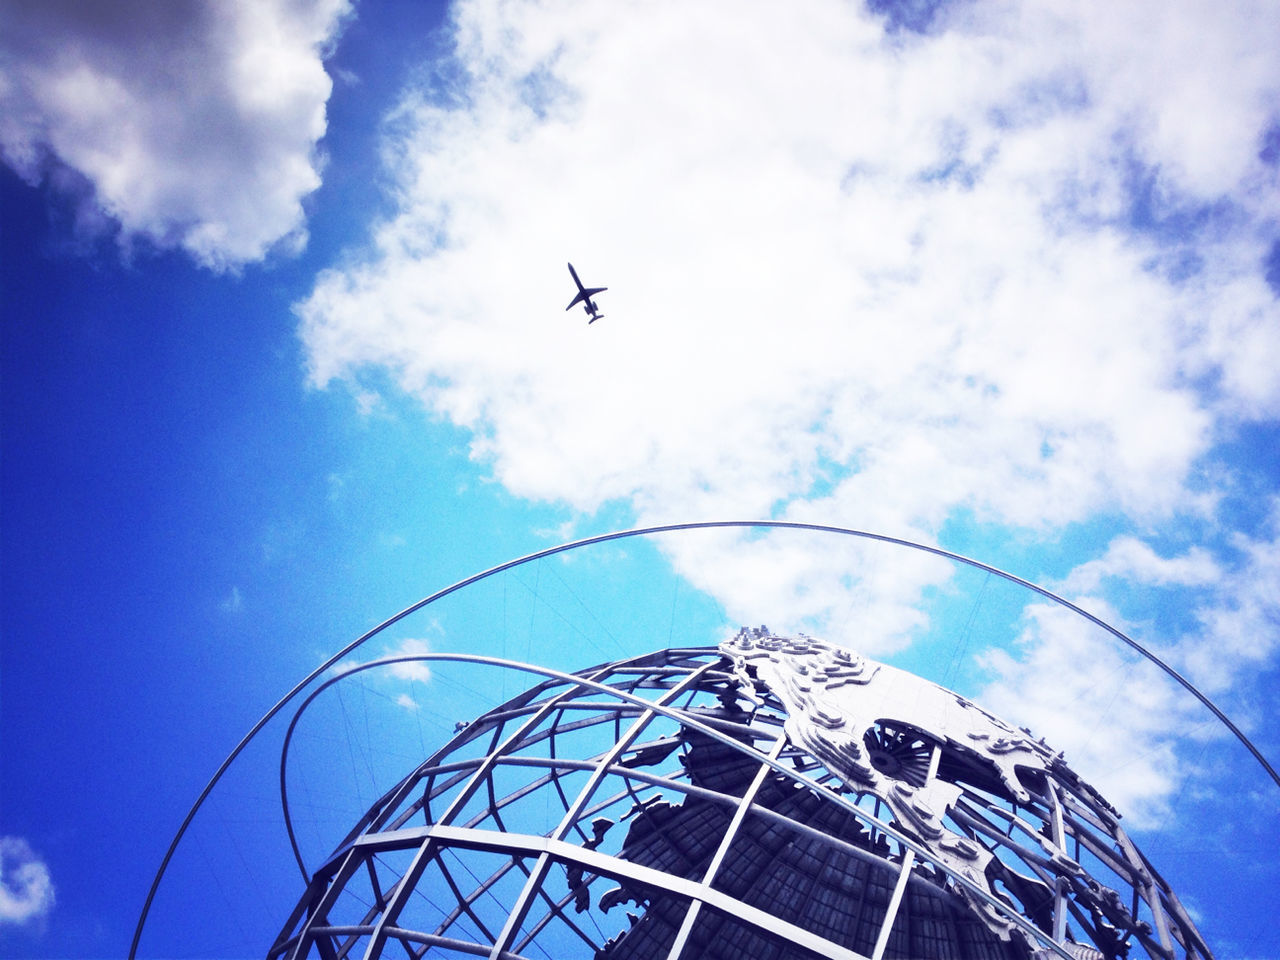 LOW ANGLE VIEW OF HELICOPTER AGAINST BLUE SKY